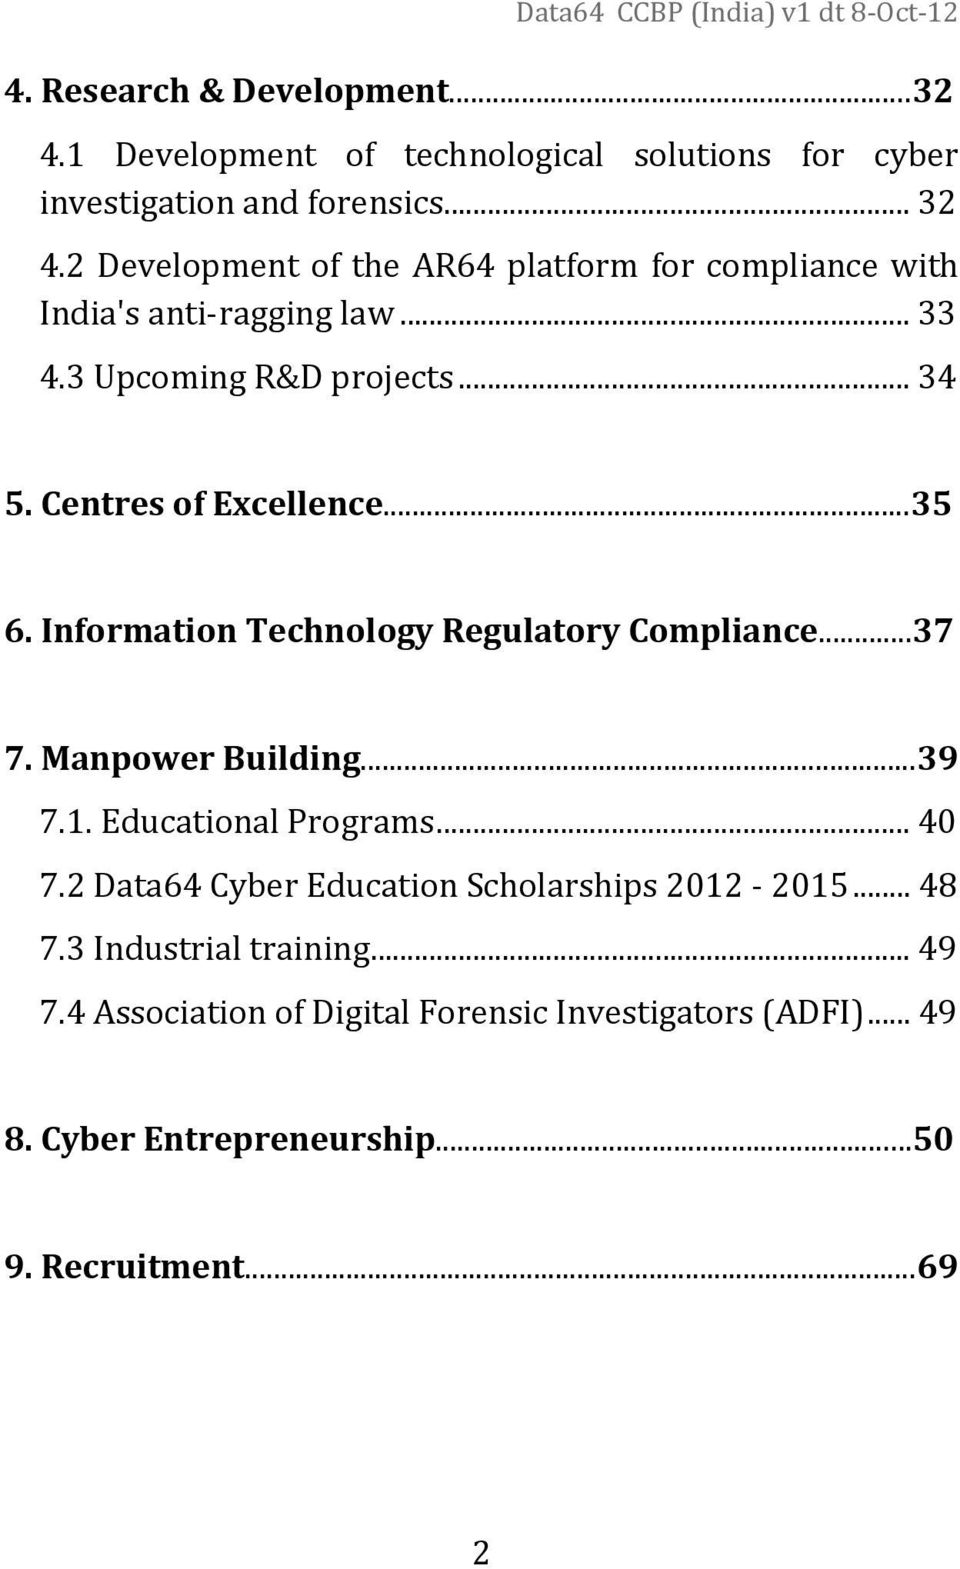 ..35 6. Information Technology Regulatory Compliance...37 7. Manpower Building...39 7.1. Educational Programs... 40 7.